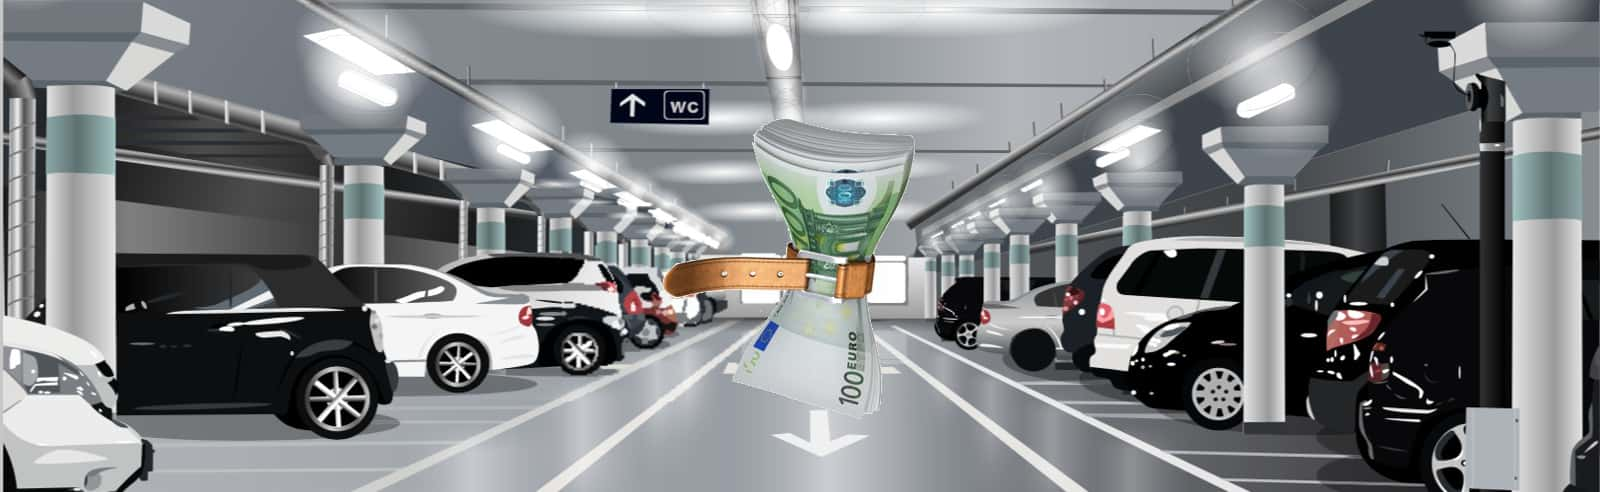 discount parking Zaventem